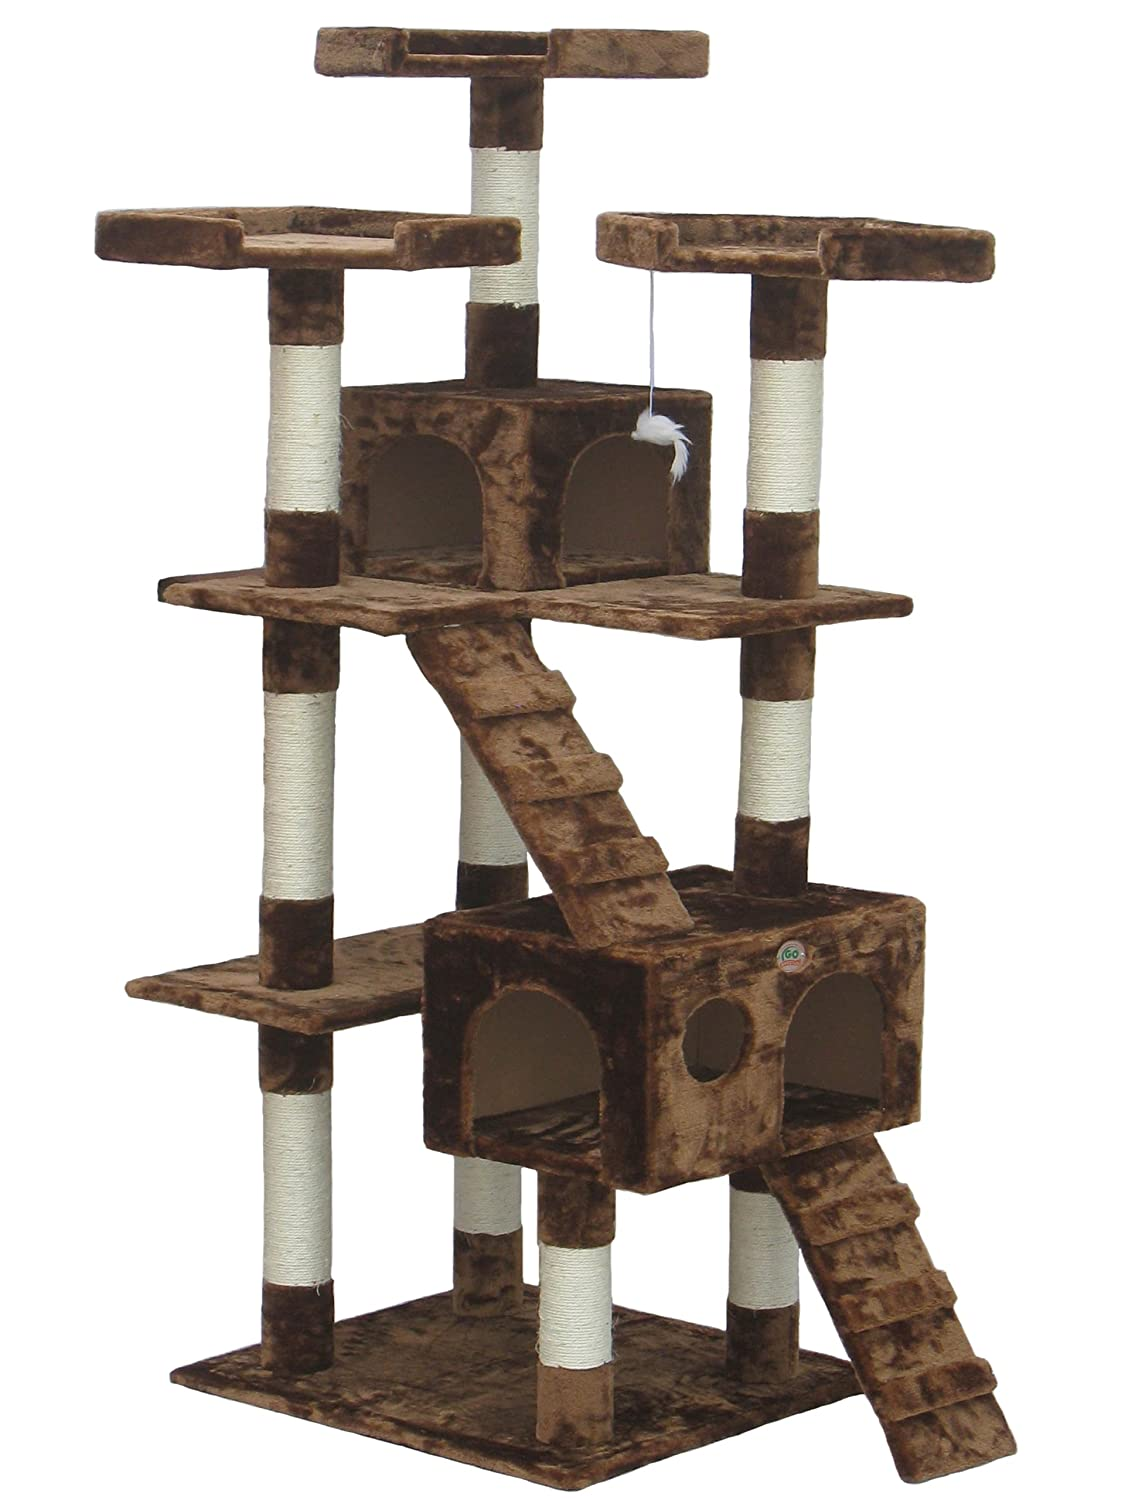 Cool cat tree plans on flipboard for Cat climber plans